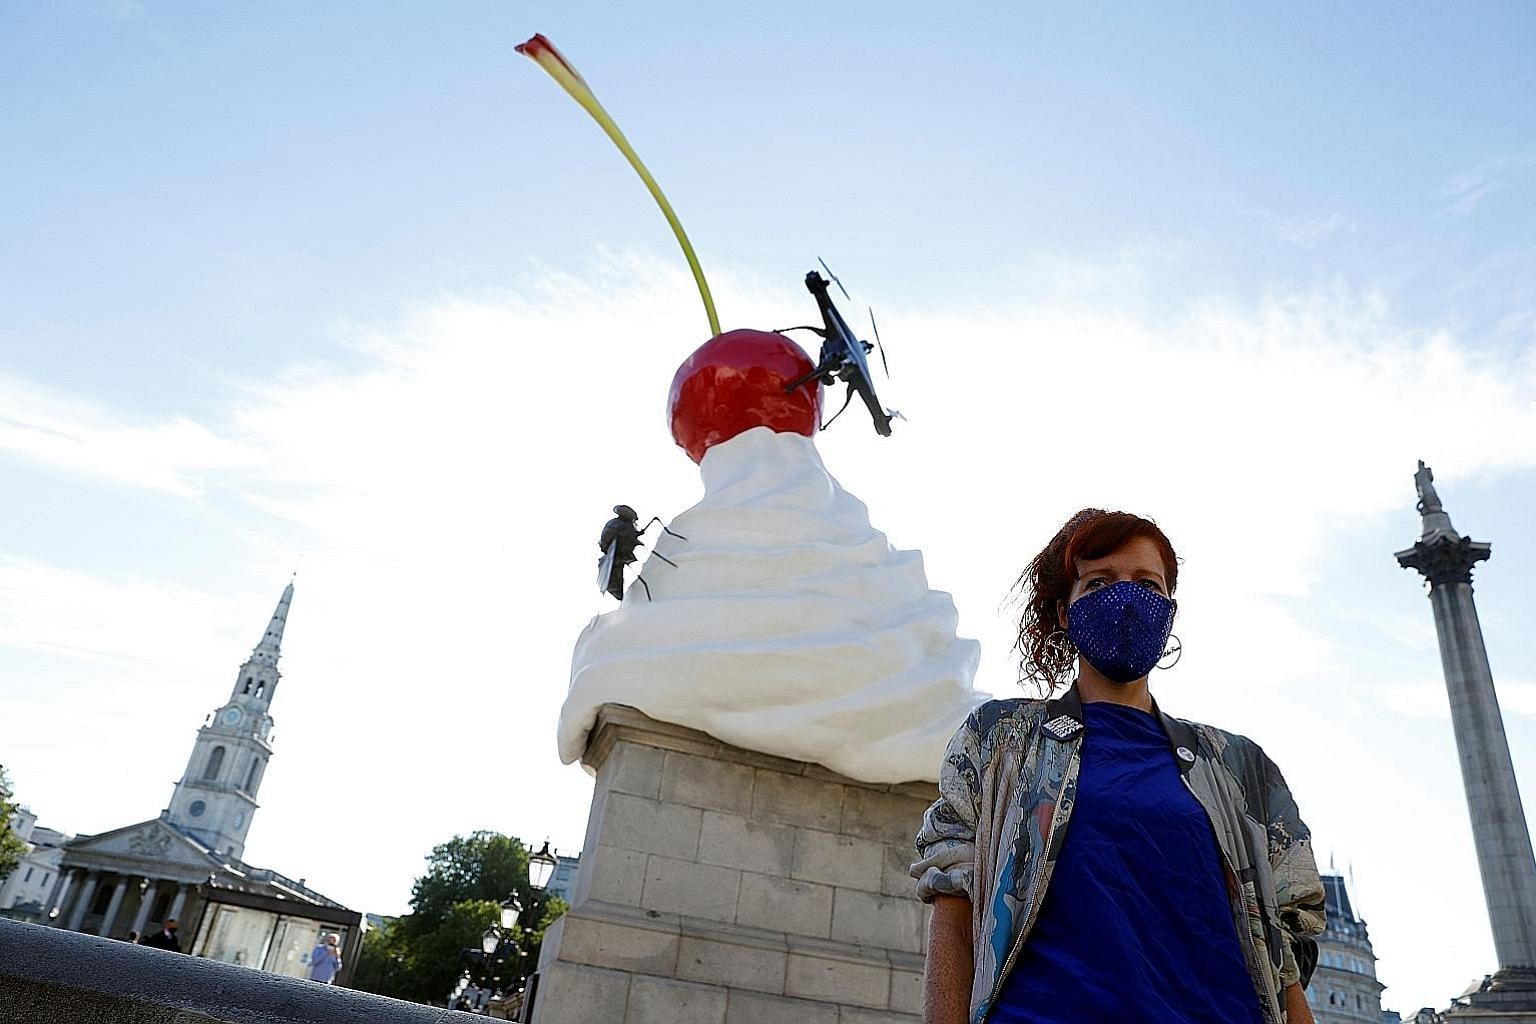 British artist Heather Phillipson's The End, installed on a plinth in Trafalgar Square, was conceived in 2016, not long after Britain voted to leave the European Union, and she had wanted the sculpture to look precarious because that was how the worl